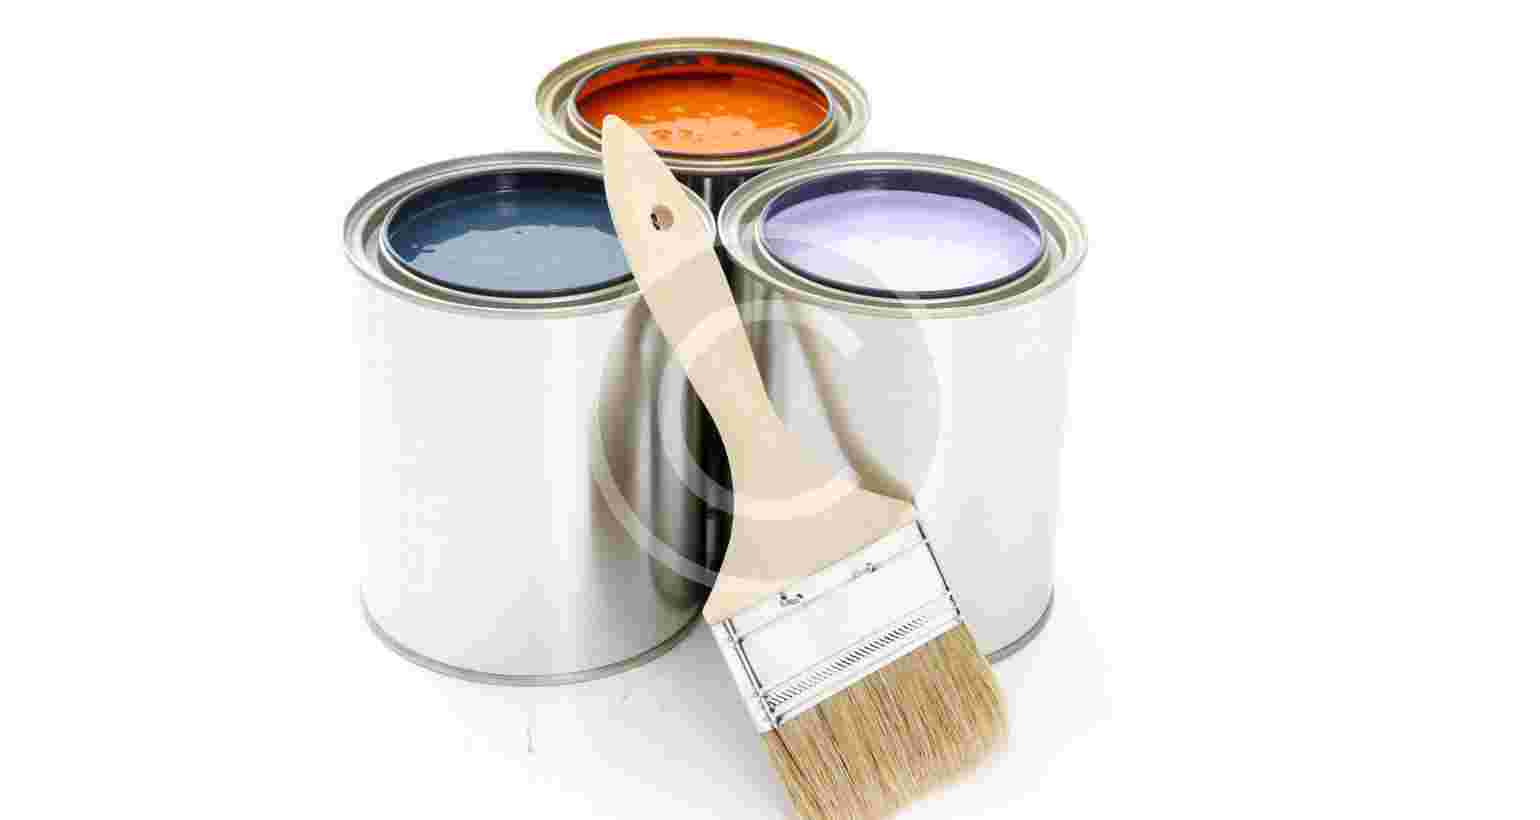 Why Does Paint Bubble, Crack or Peel